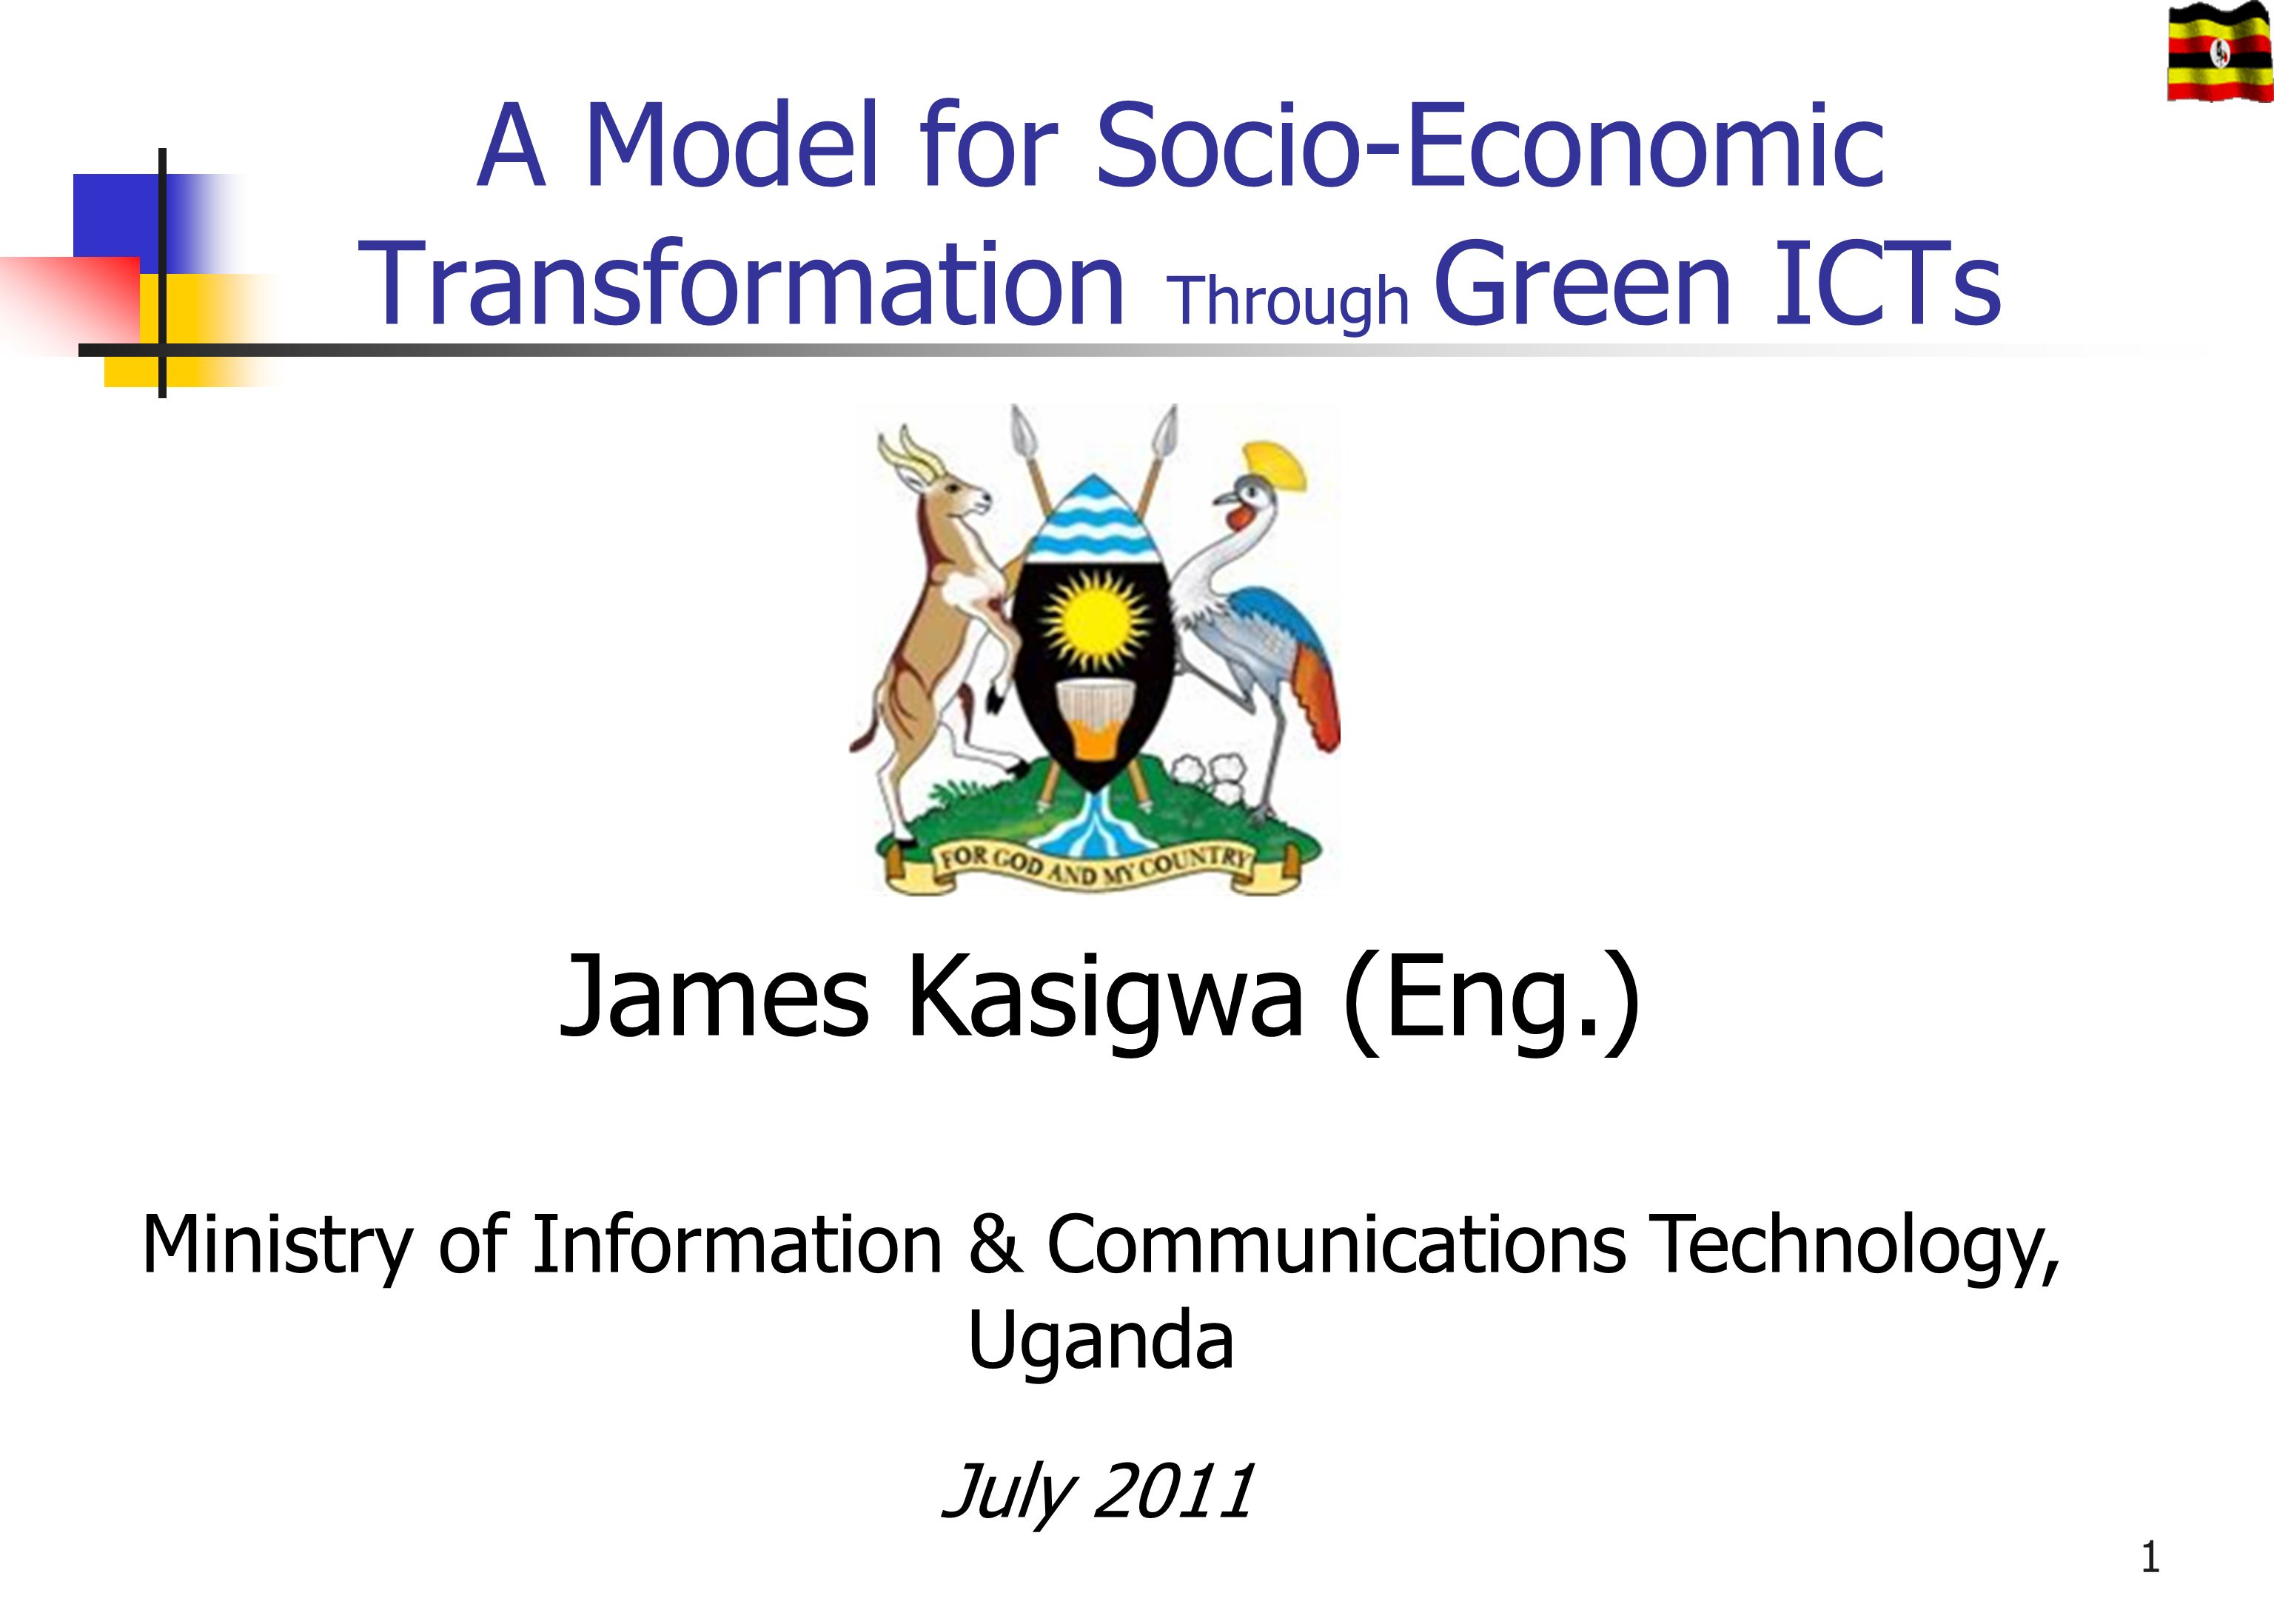 A Model for Socio-Economic Transformation Through Green ICTs James Kasigwa (Eng.) Ministry of Information & Communications Technology, Uganda July 201